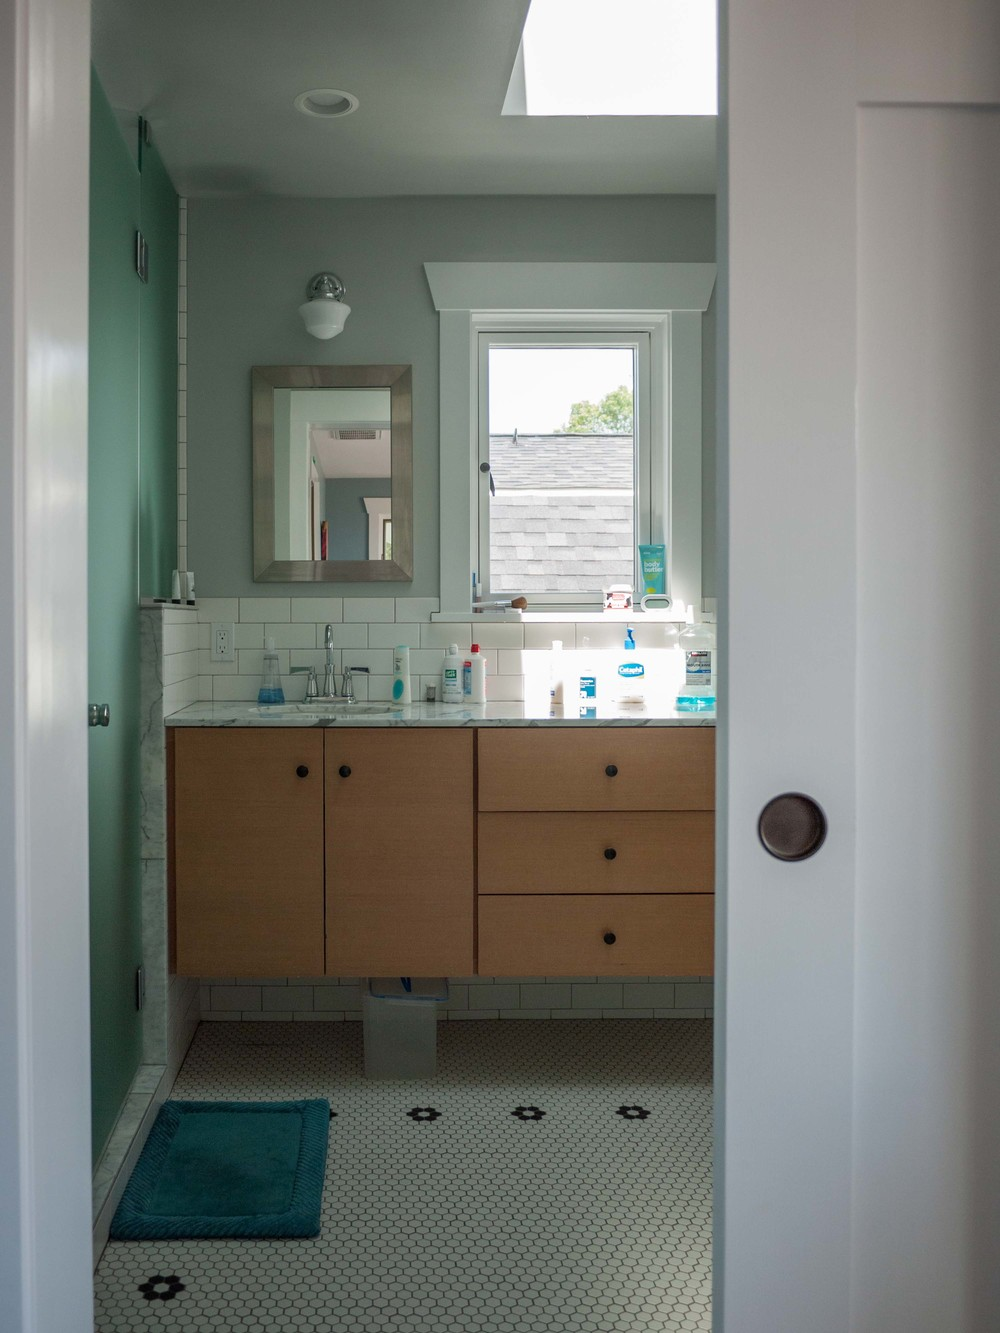 A view into the master suite bathroom.